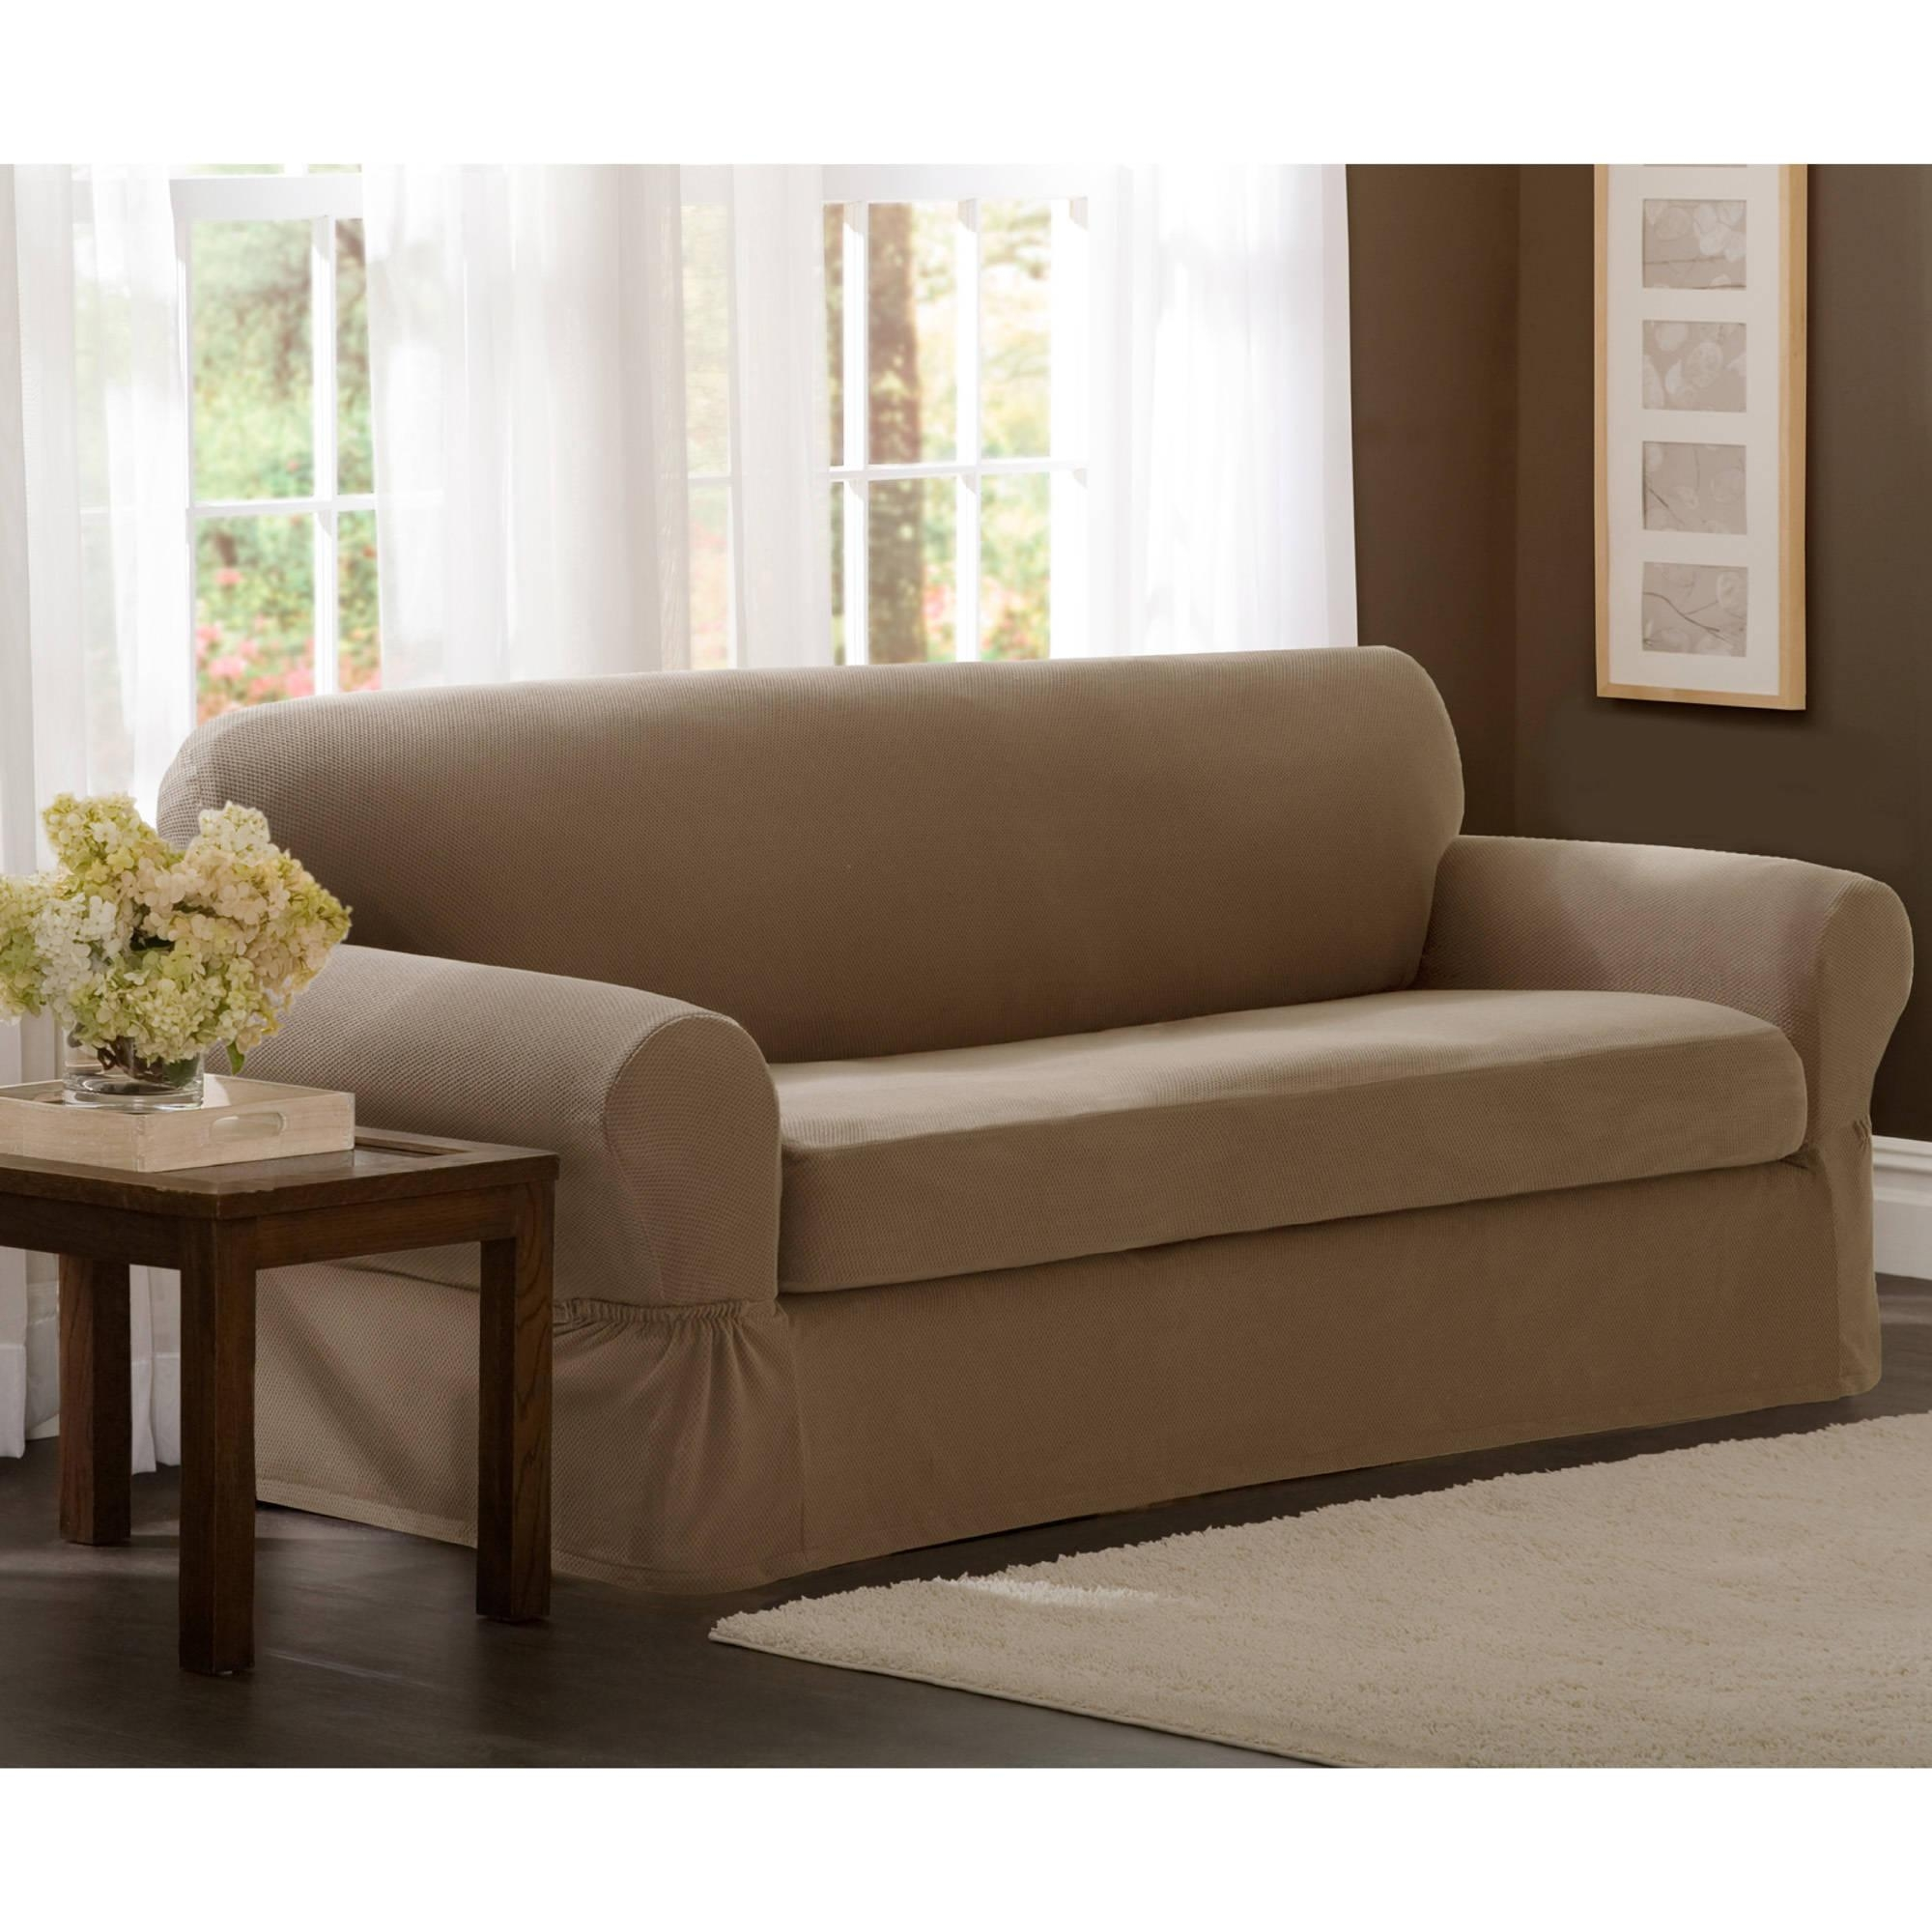 Sofas Center : Double Reclining Sofa Slipcovers Custom Slipcover T In Recliner Sofa Slipcovers (View 14 of 20)